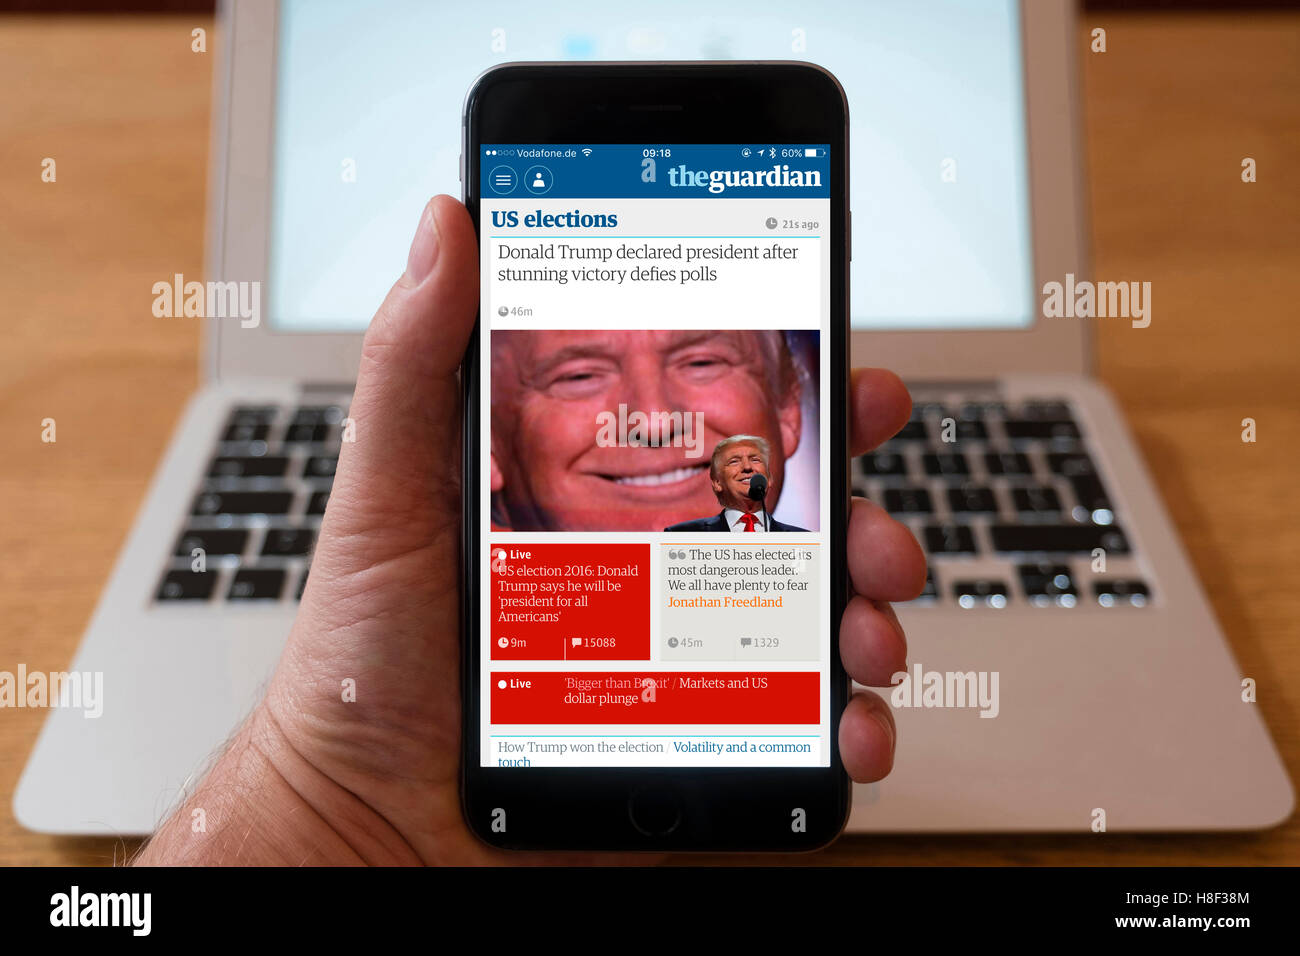 Detail of iPhone smart phone showing online mobile  newspaper front-page headline from The Guardian following Donald - Stock Image